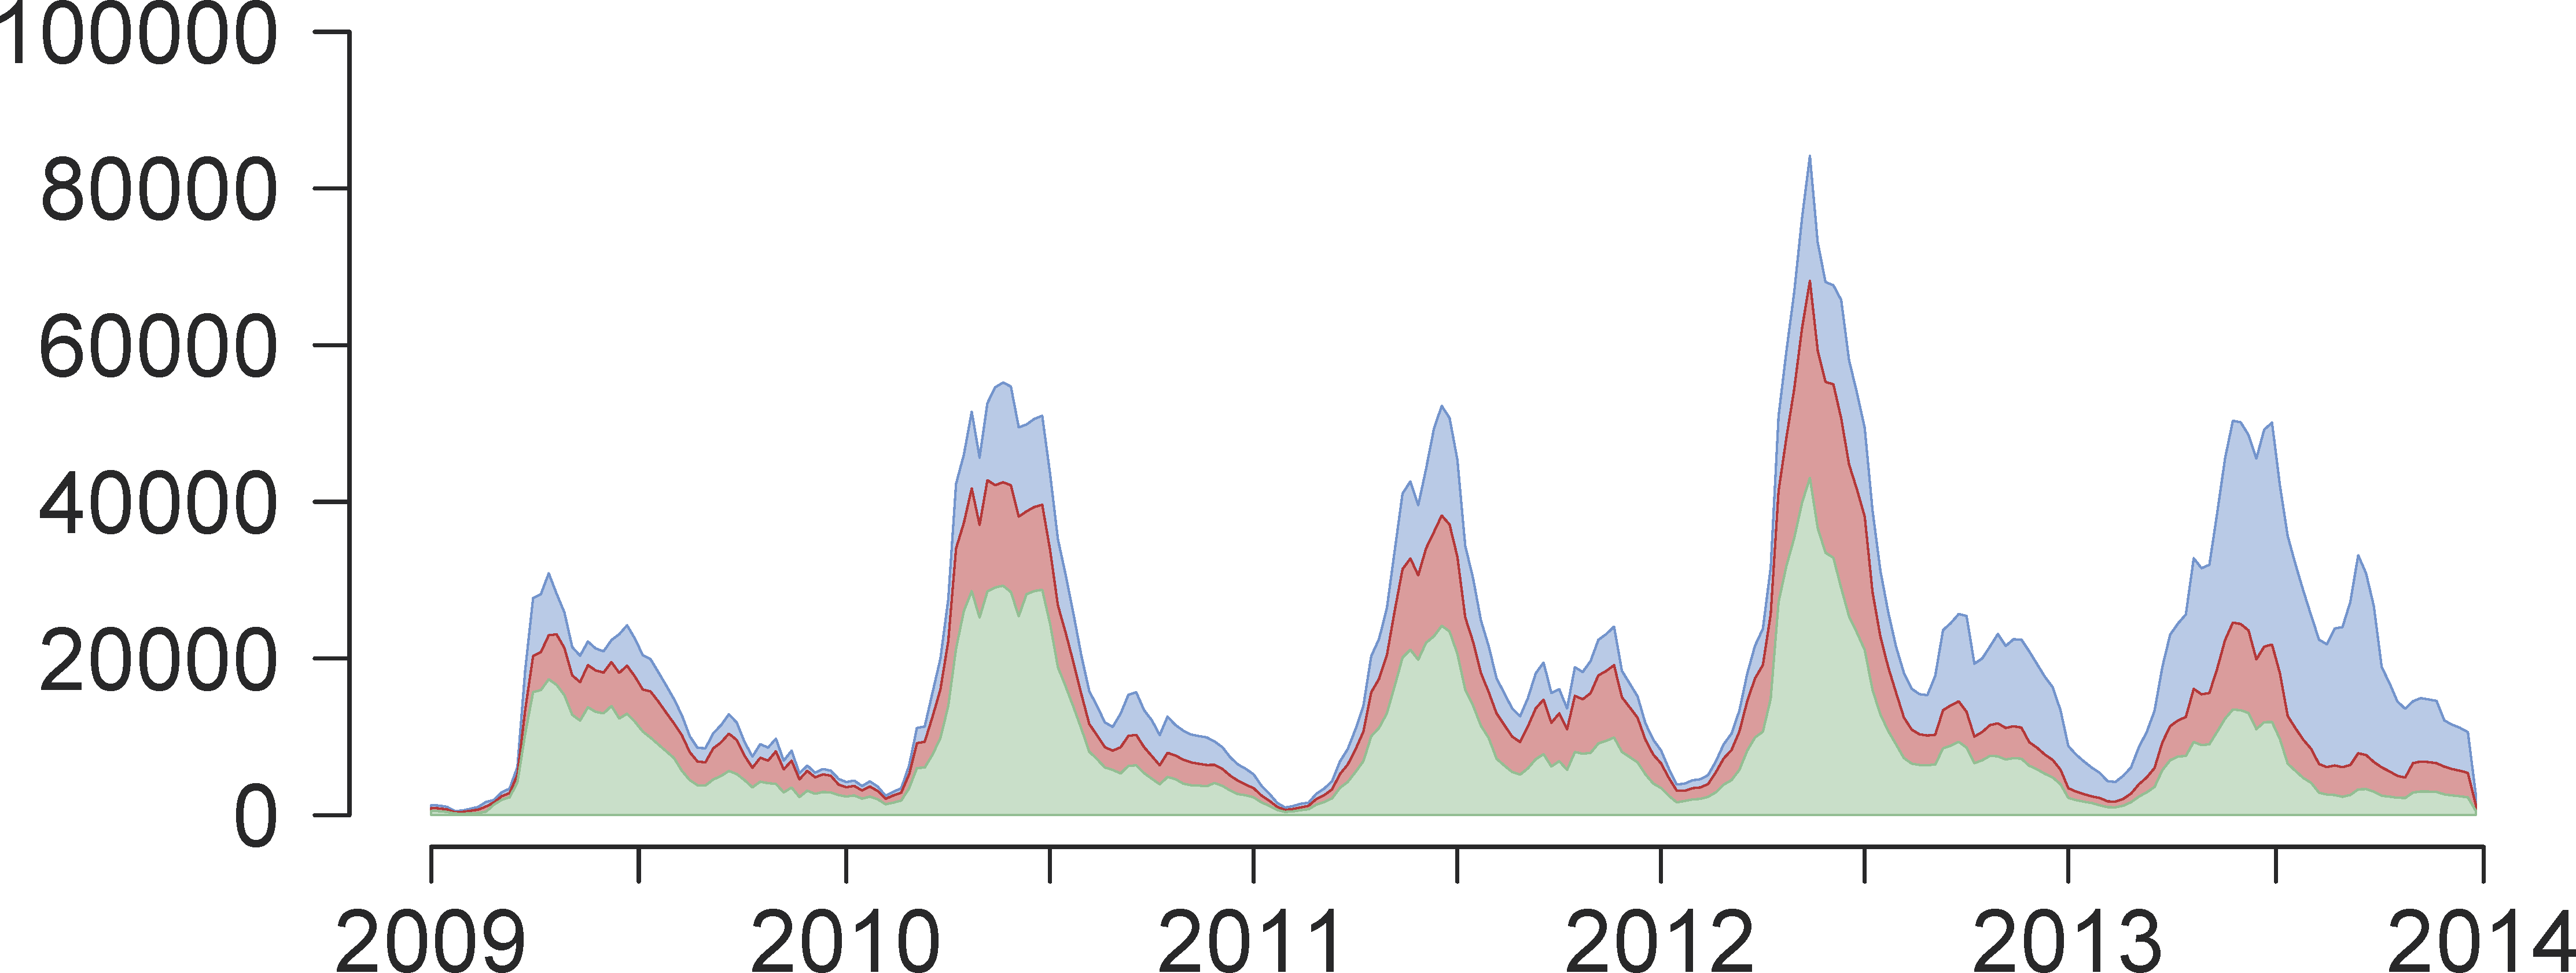 Weekly reported time series of HFMD cases between 1 January 2009 and 31 December 2013.